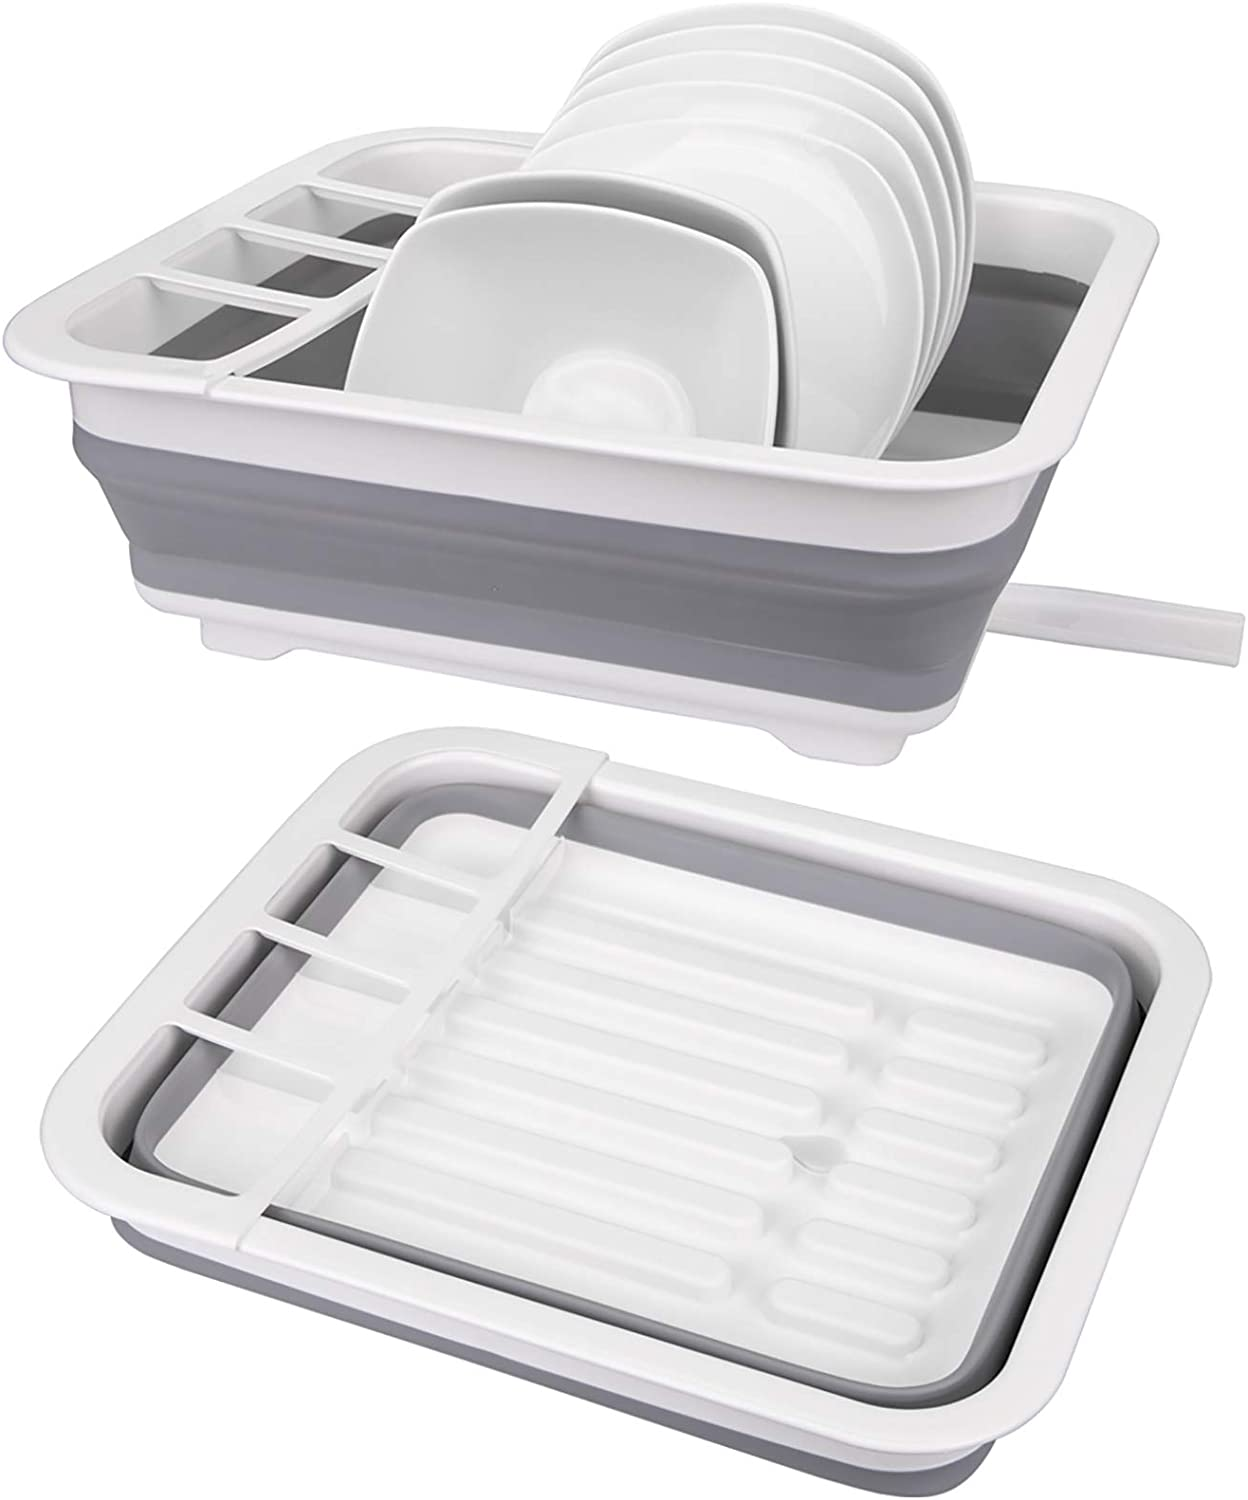 Nicunom Collapsible Dish Drying with famous Rack specialty shop Drainer Portable